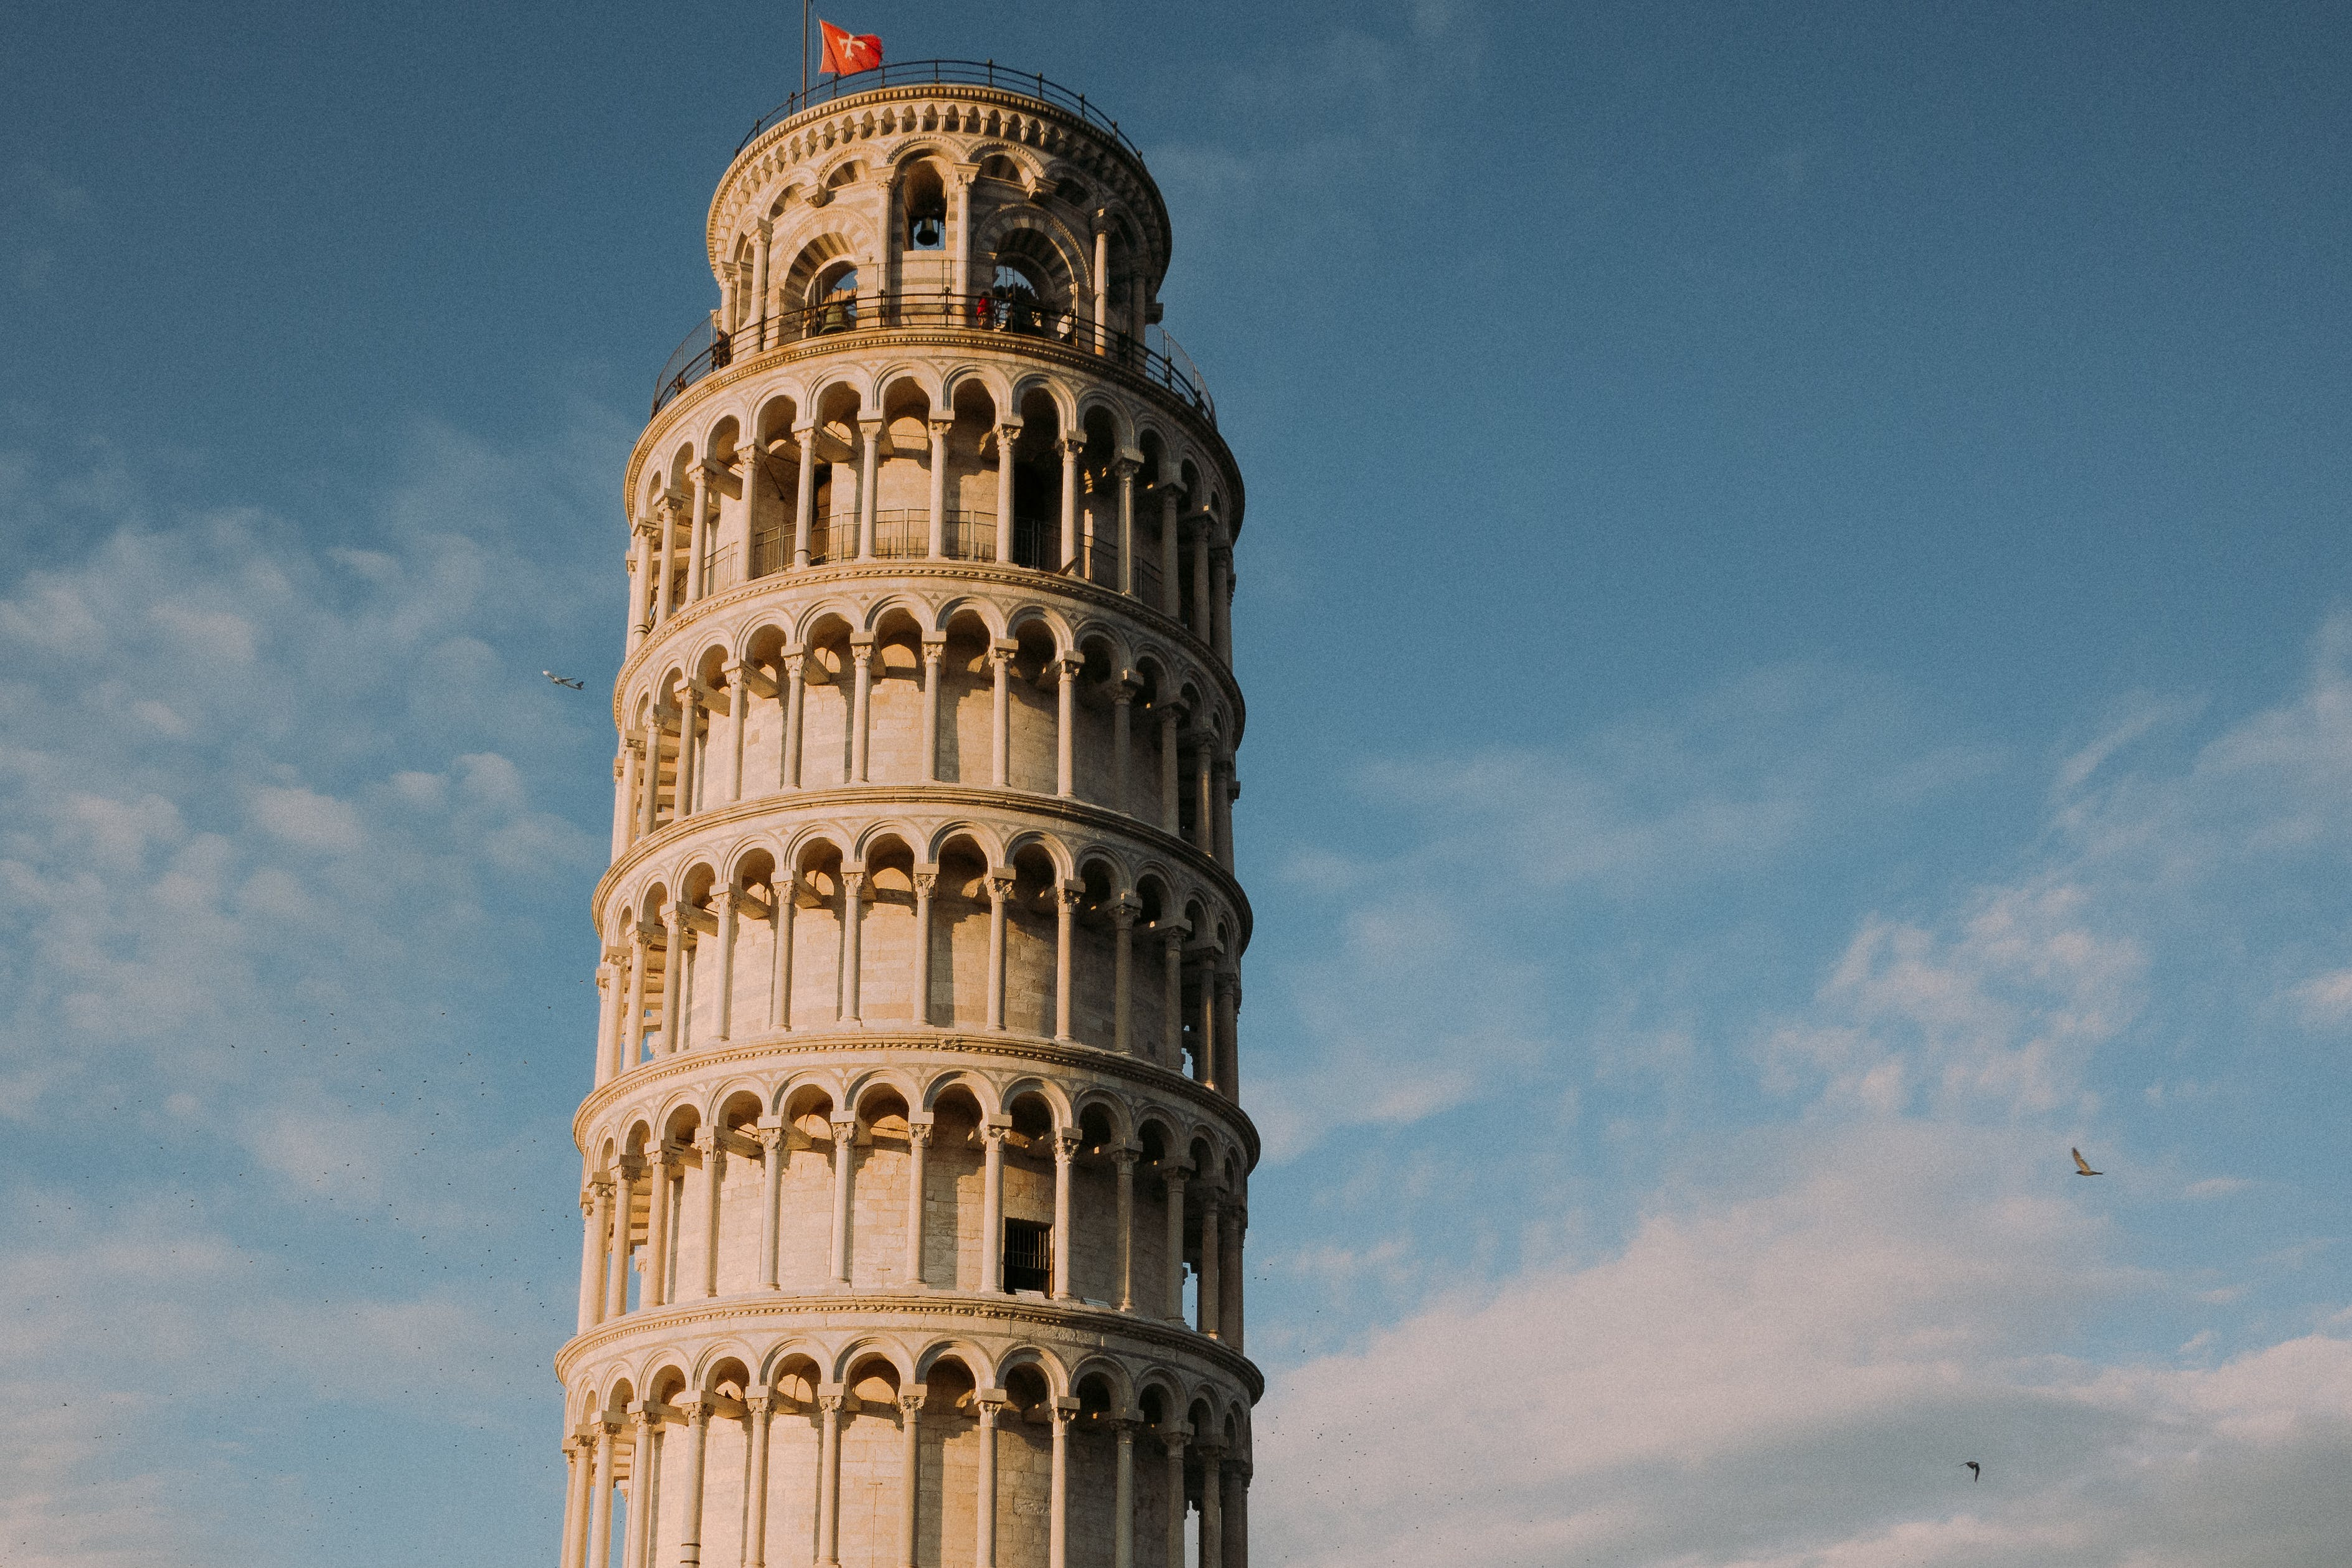 Leaning Tower Of Pisa Under Blue Sky